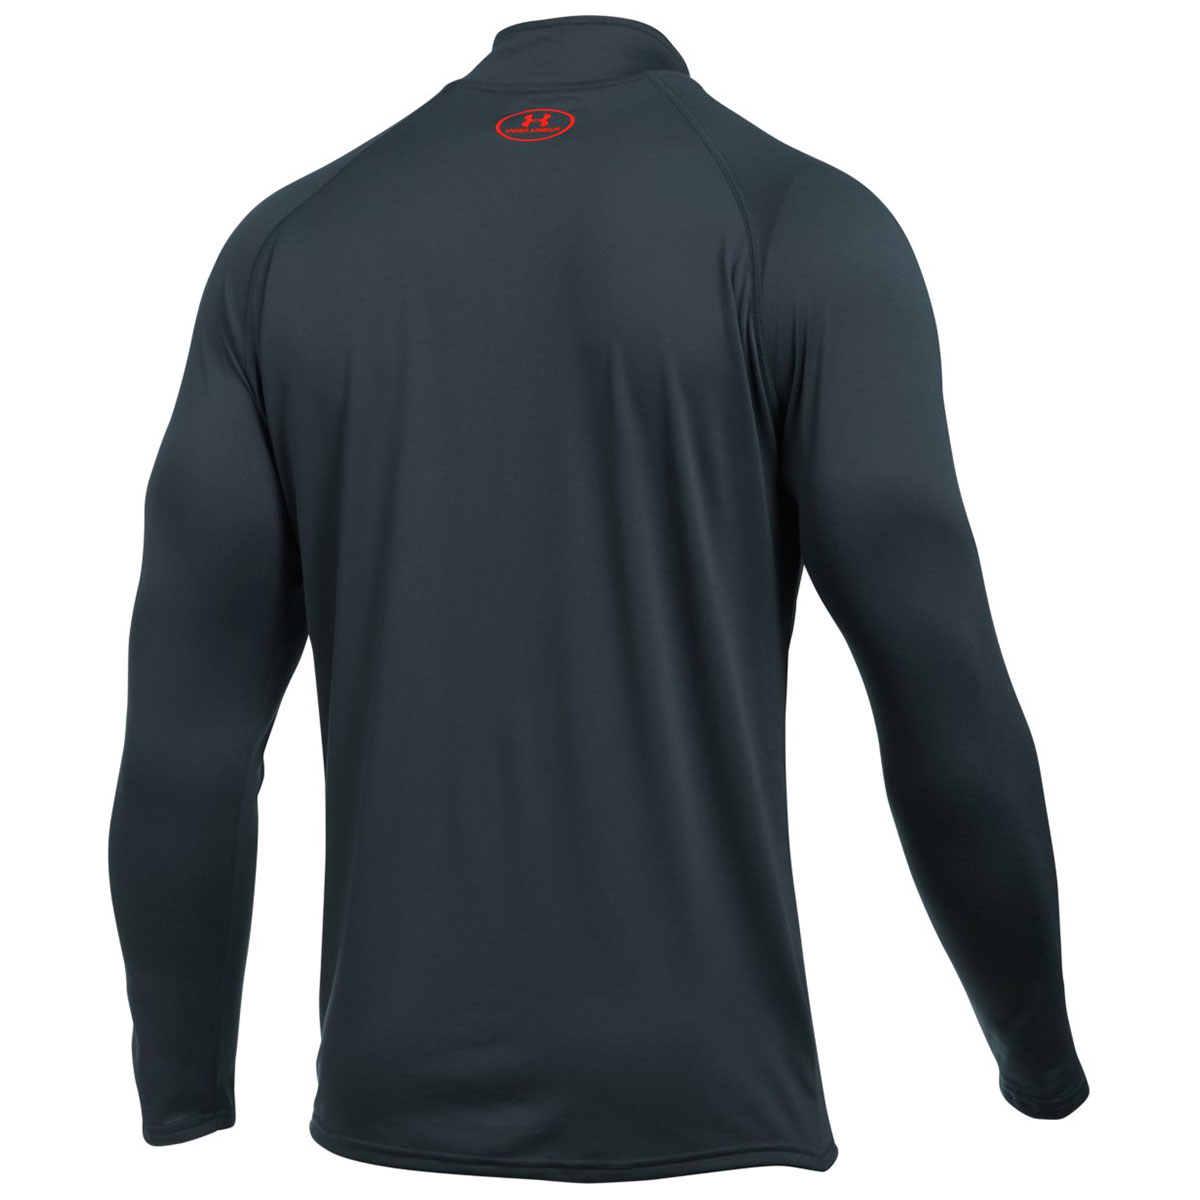 Under-Armour-Mens-UA-Tech-1-4-Zip-Long-Sleeve-Top-Workout-Layer-27-OFF-RRP thumbnail 82